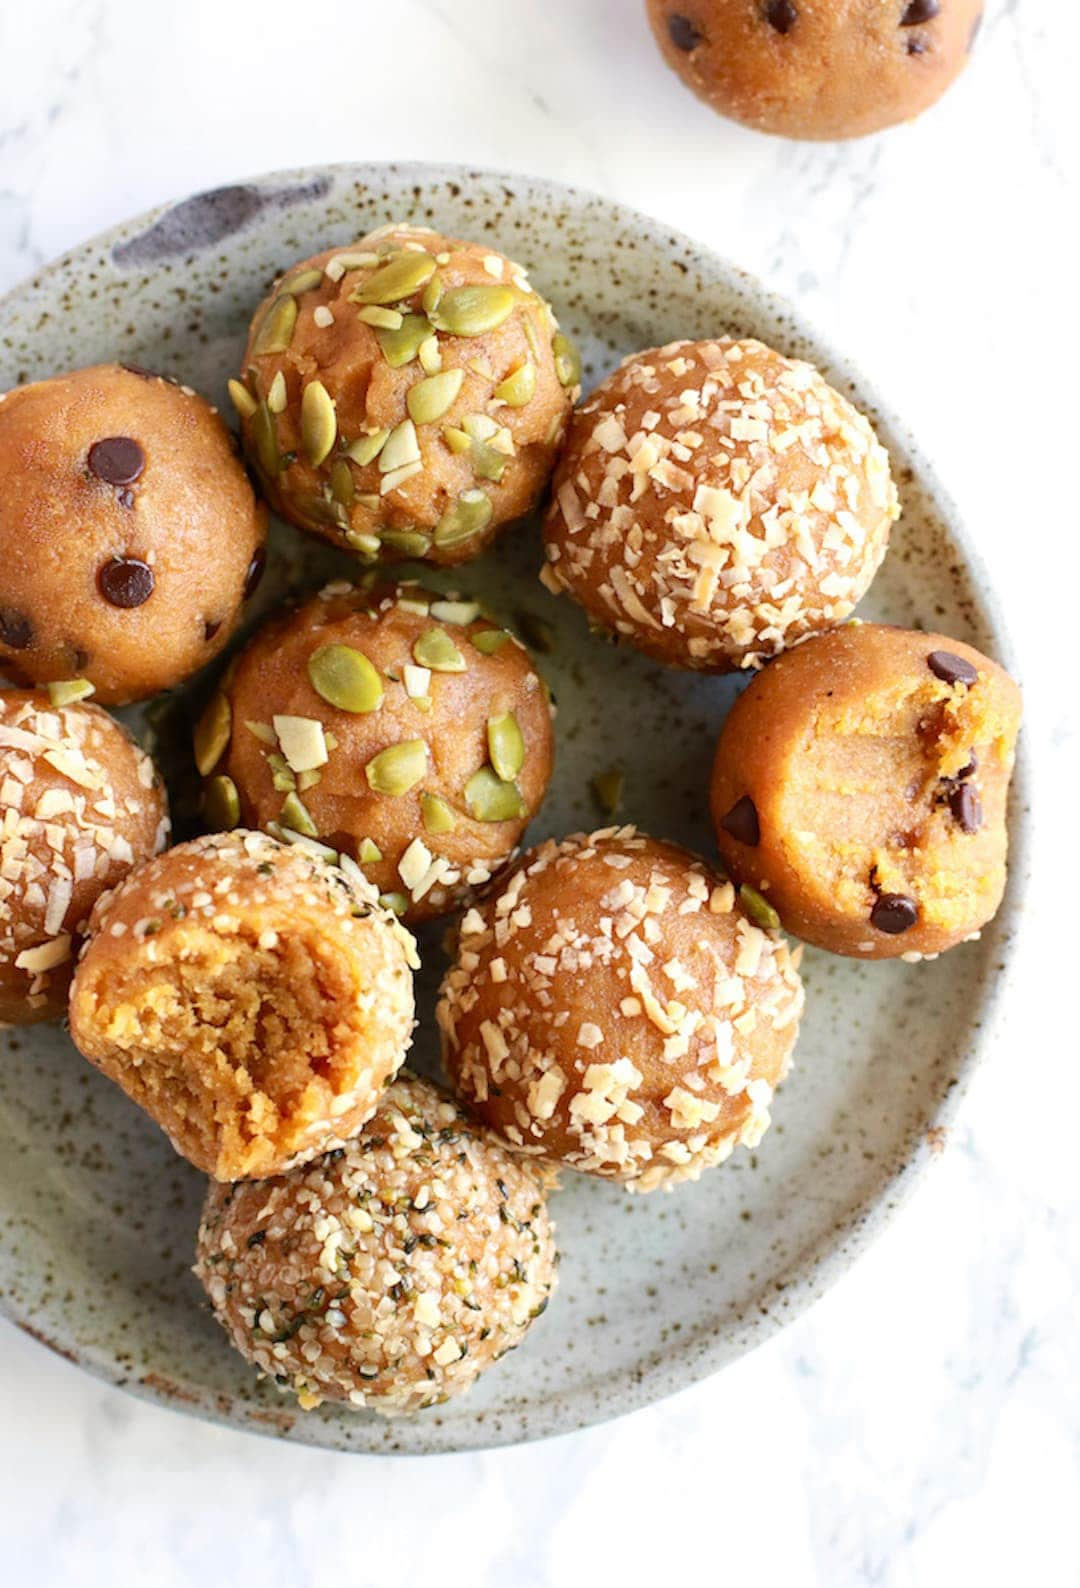 10 Terrific & Simple Healthy Fall Recipes - Pumpkin Pie Energy Balls